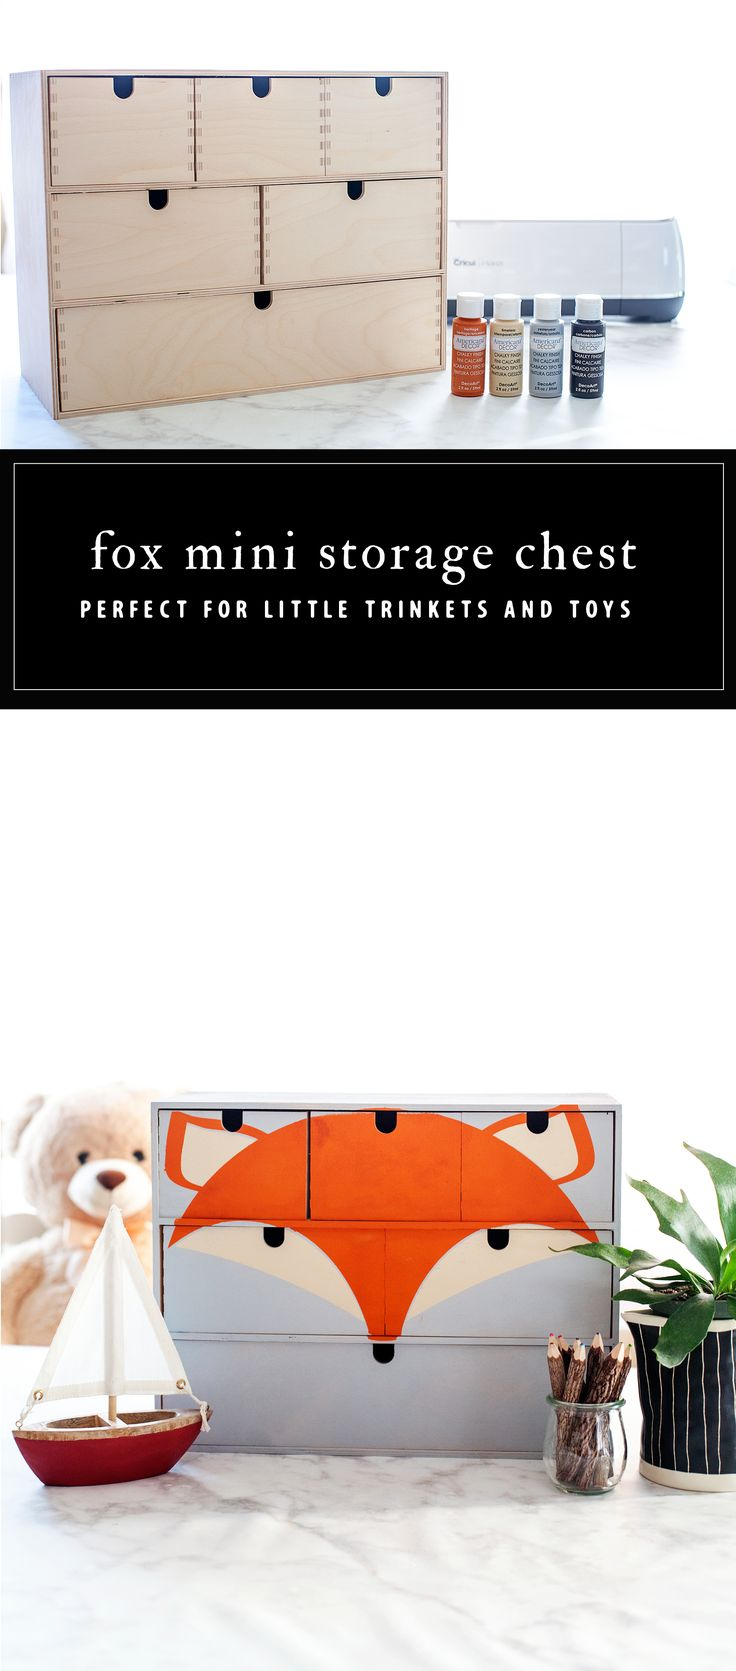 Fox Storage Chest • DecoArt IKEA Moppe Challenge – Transform a basic IKEA pieces into a custom storage chest for a kid's room!